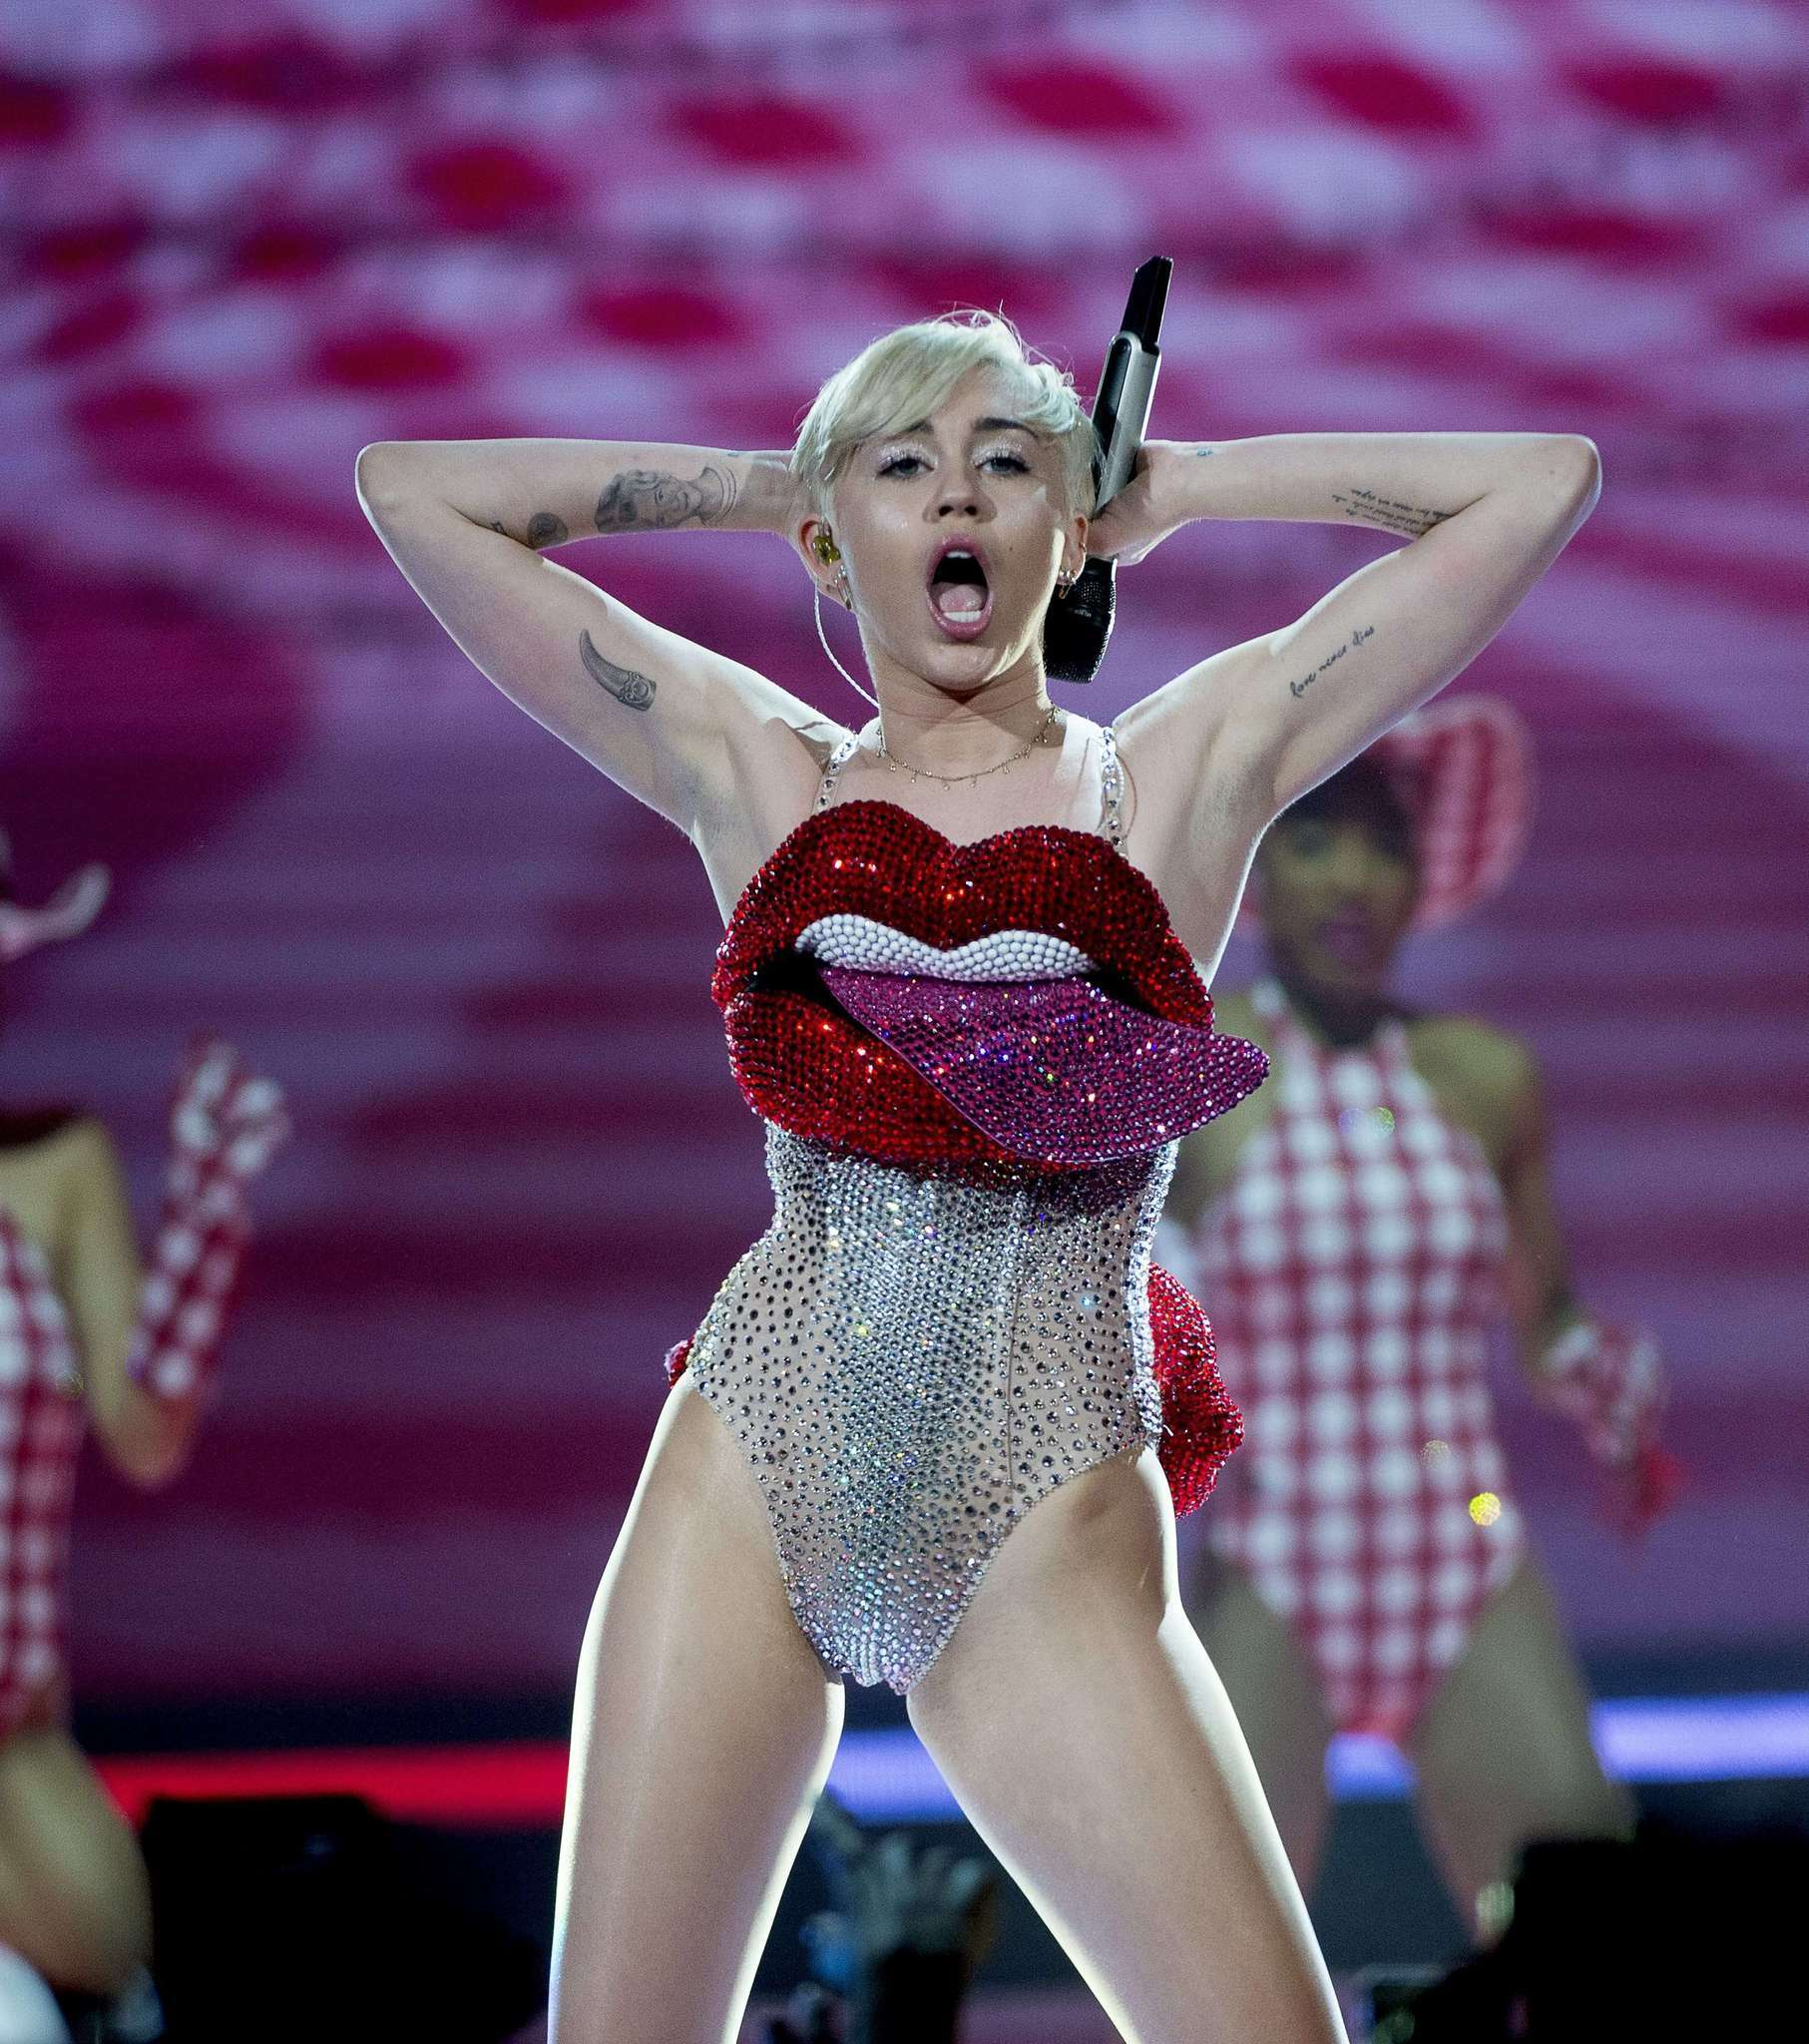 Miley Cyrus performs during her concert at the Ericsson Globe Arena in Stockholm, Sweden, on May 30, 2014.